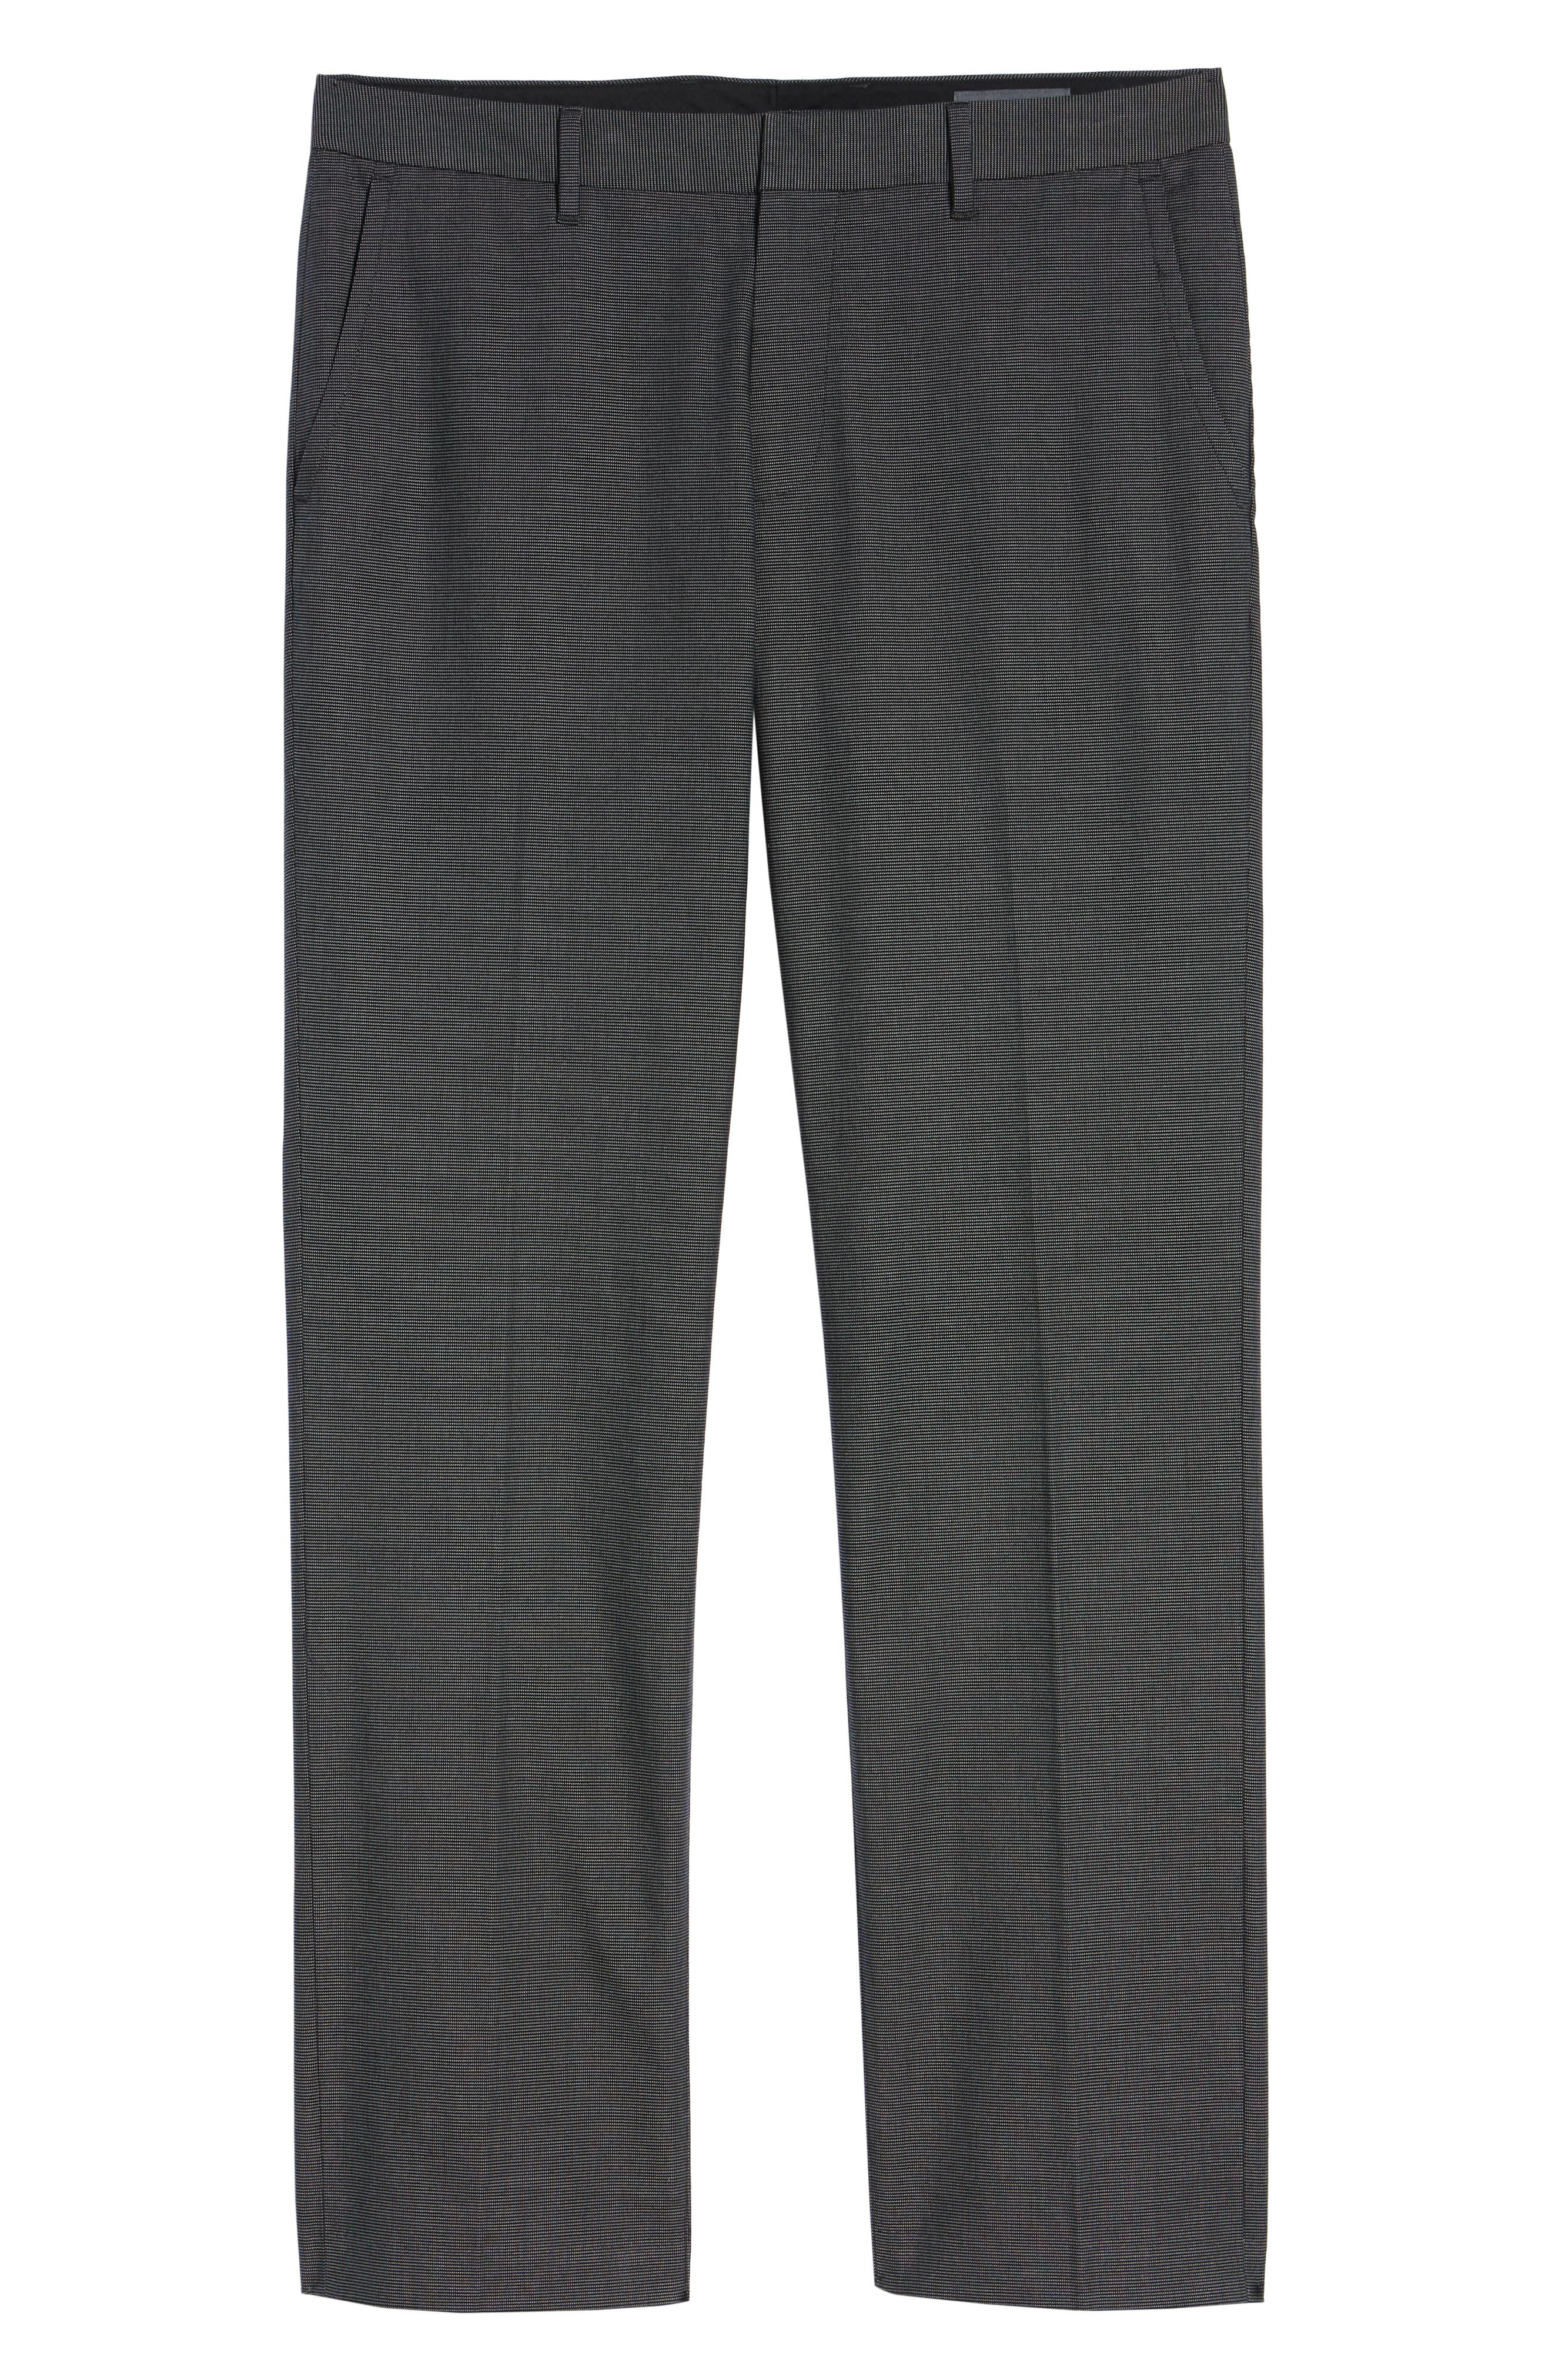 Weekday Warrior Straight Leg Stretch Dress Pants,                             Alternate thumbnail 6, color,                             TUESDAY CHARCOAL